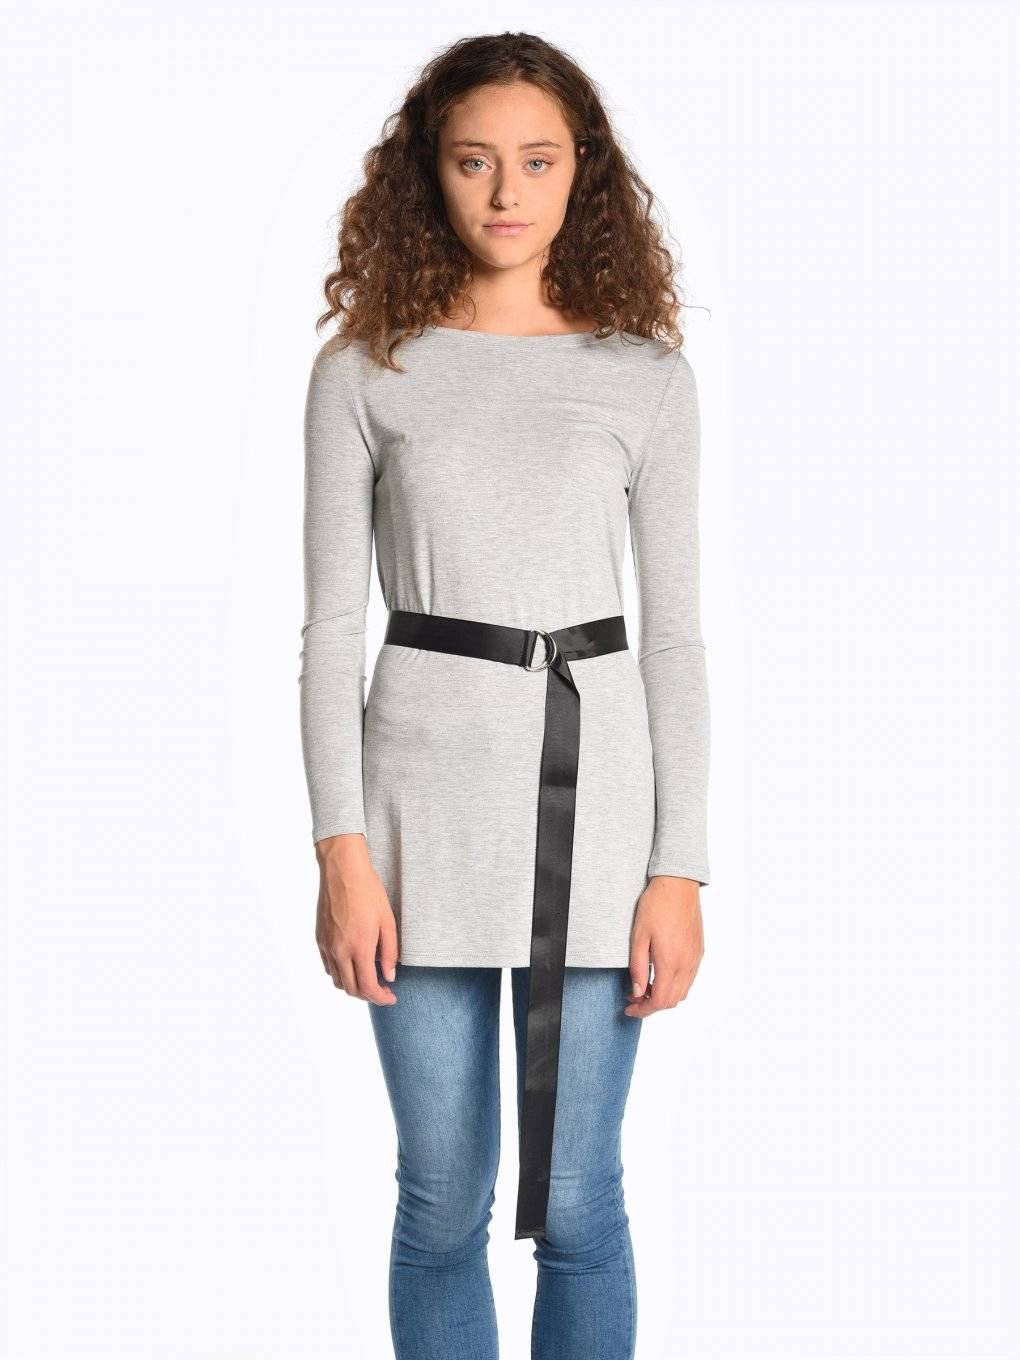 Longline top with belt